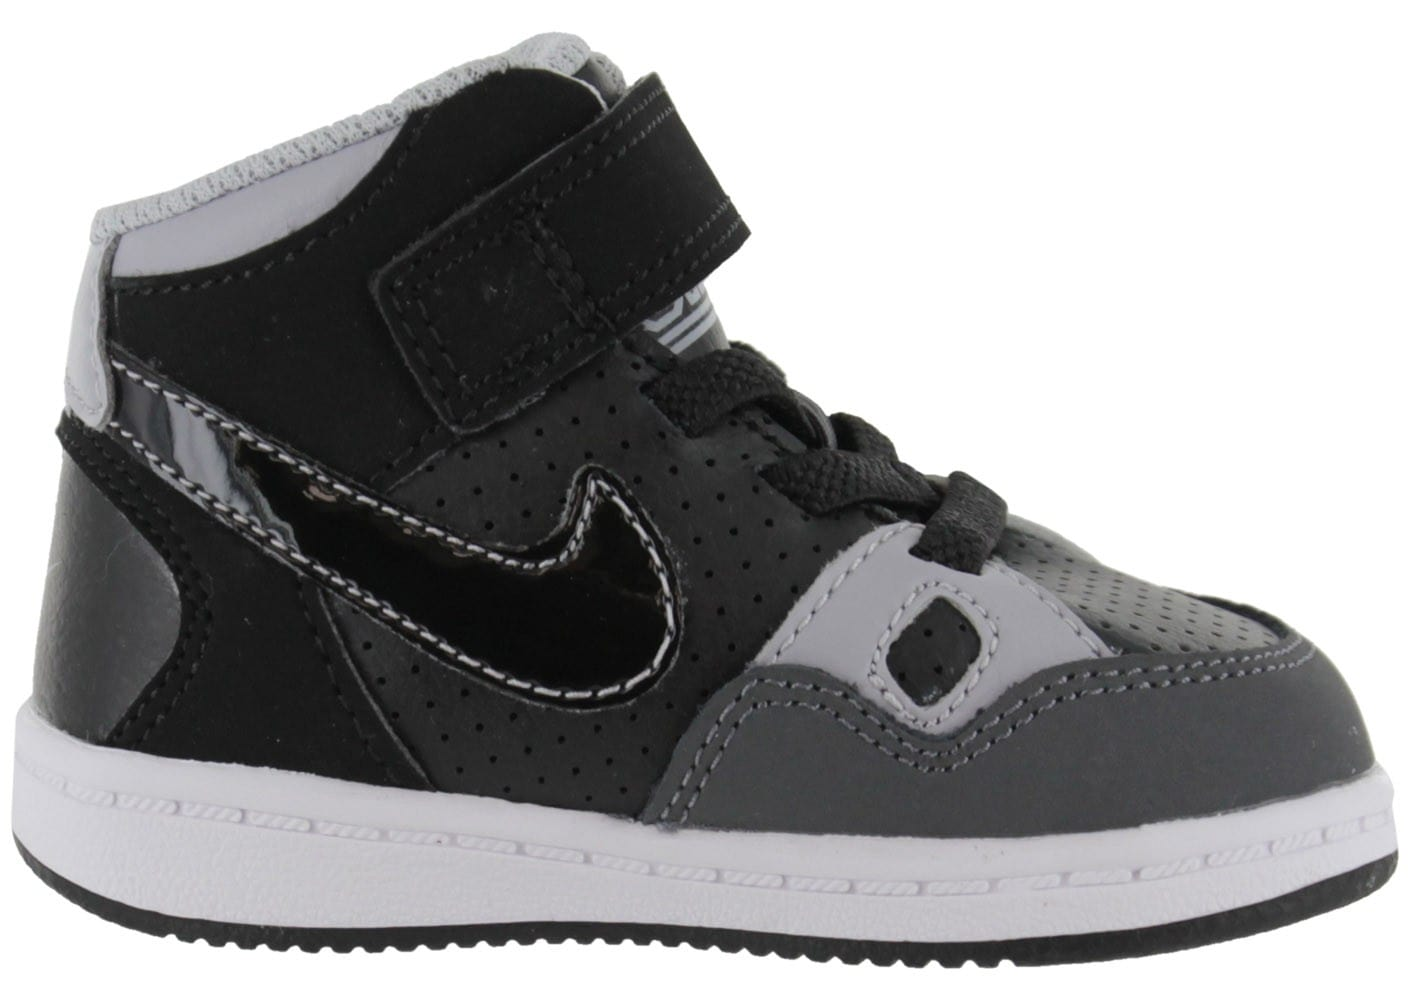 Of Bébé Chausport Chaussures Son Force Nike Noire bfg7yY6v